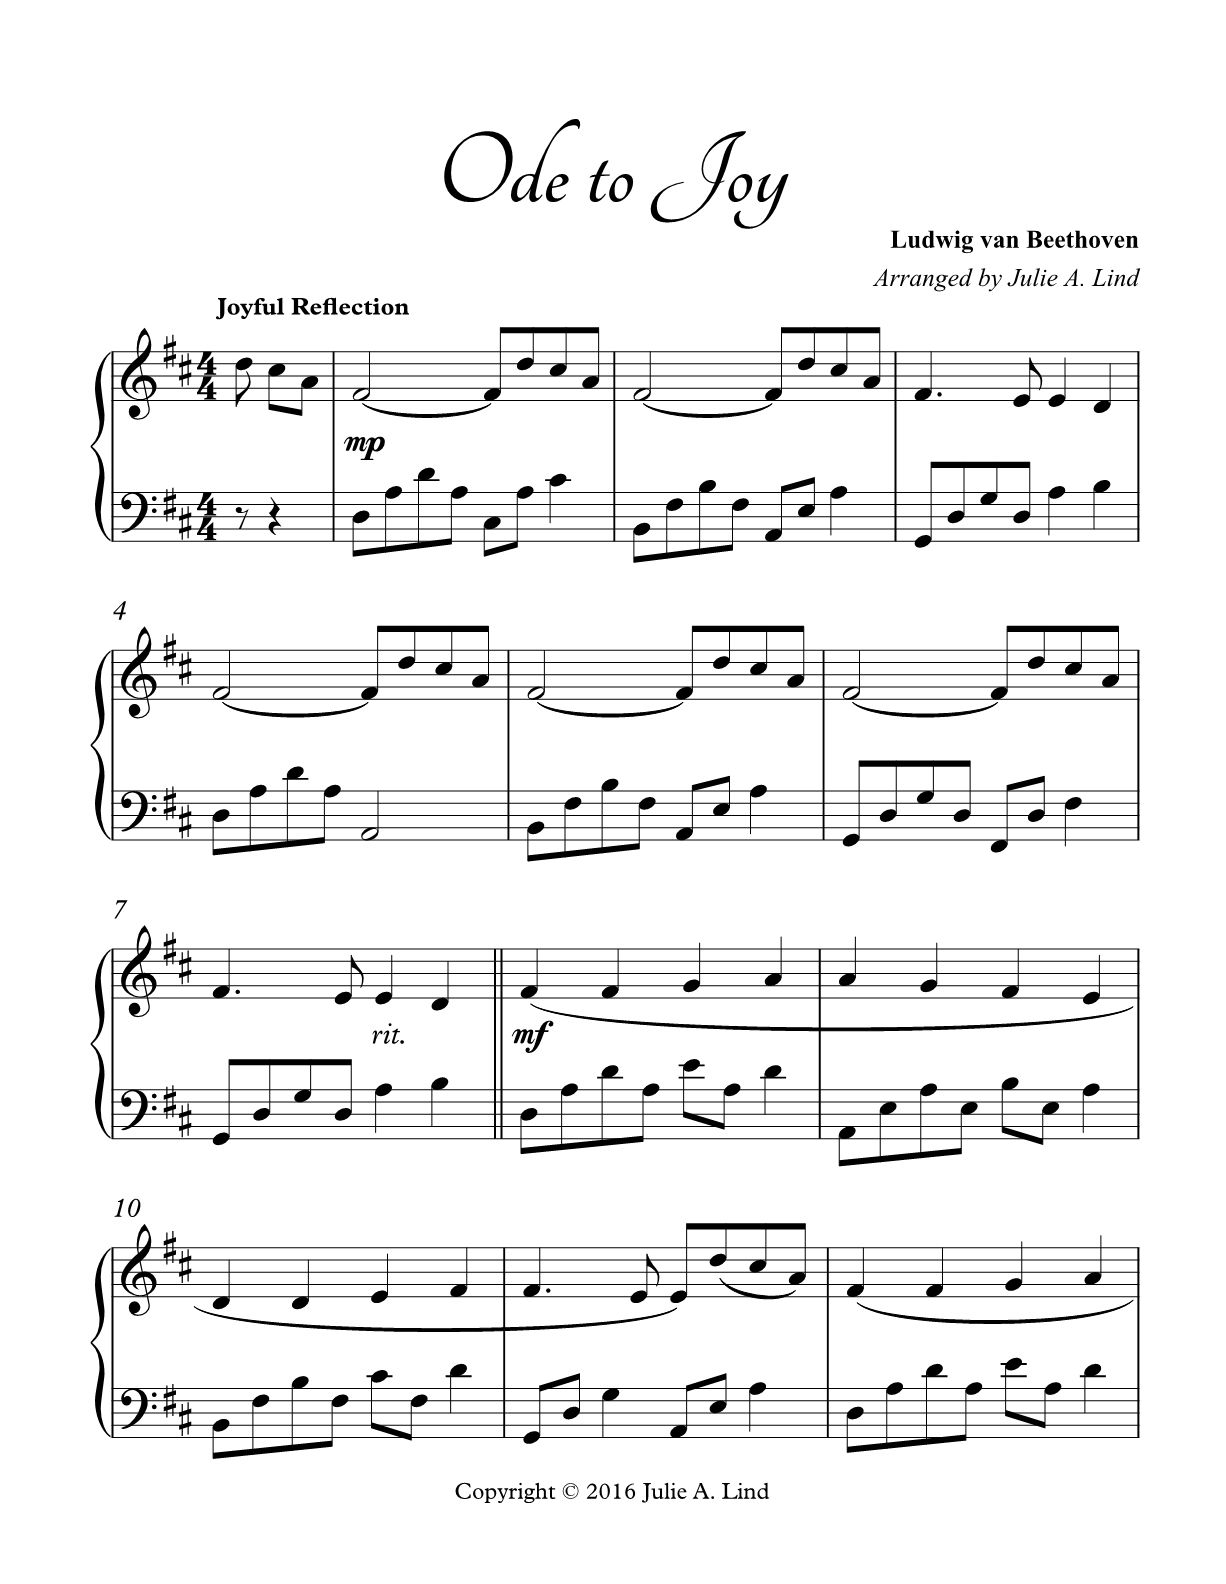 A Beautiful Piano Arrangement Of Beethoven S Ode To Joy